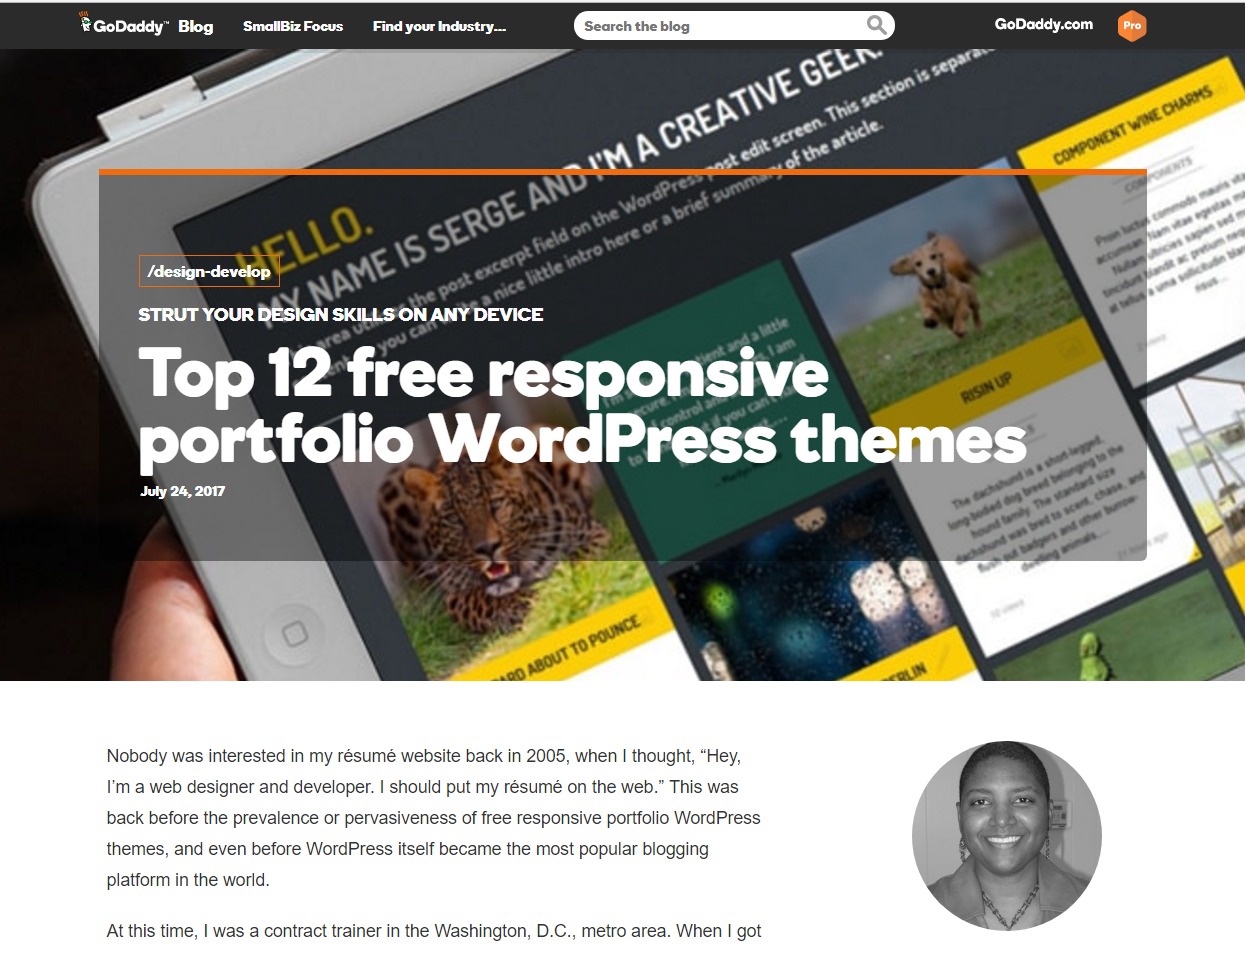 GoDaddy Blog: Top 12 free responsive portfolio WordPress themes by Faydra Deon